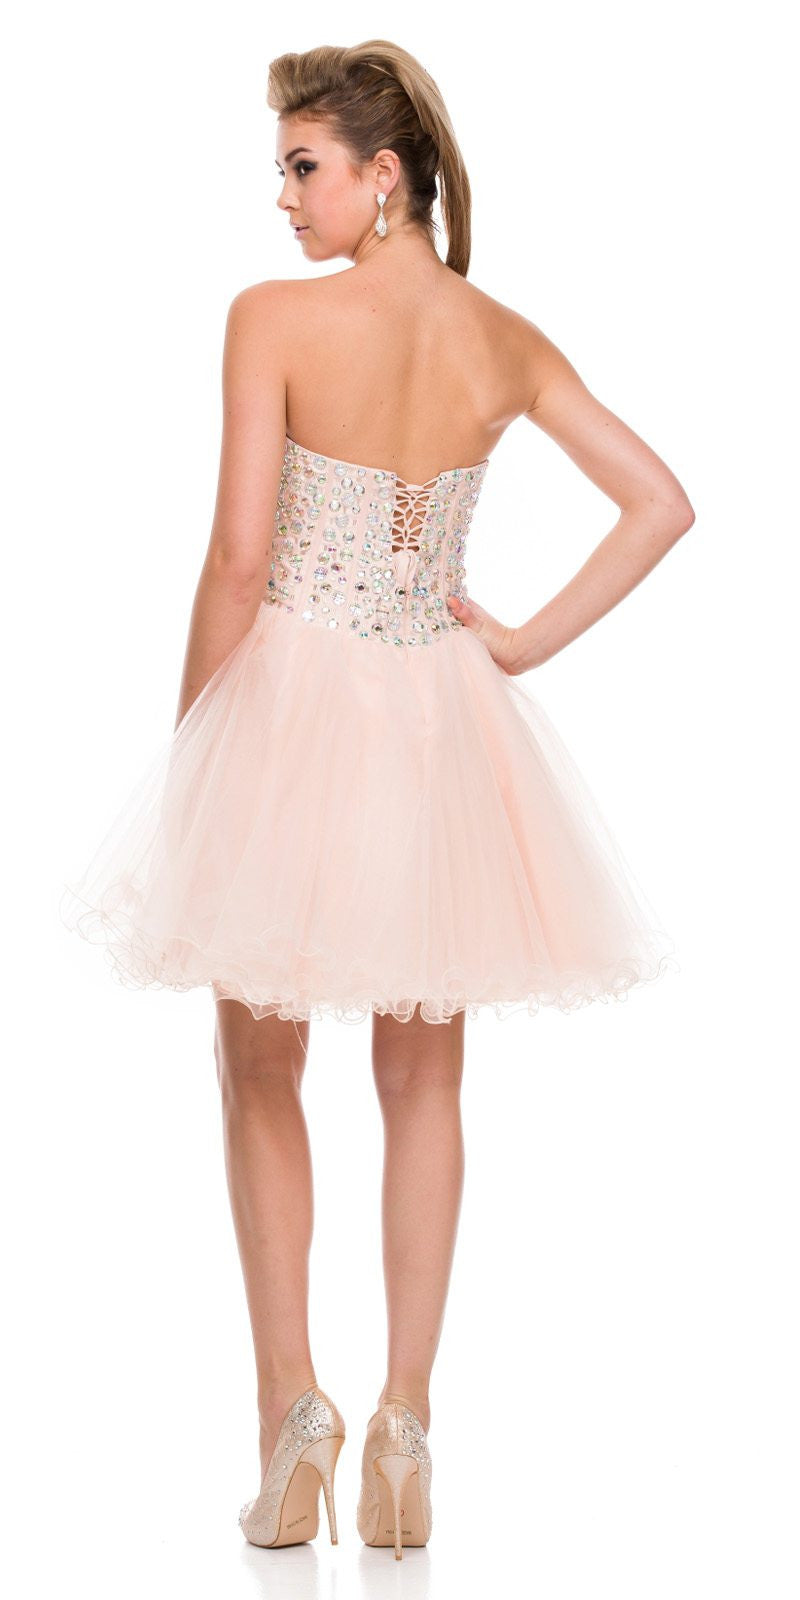 Strapless Rhinestone Embellished Bodice Short Prom Dress